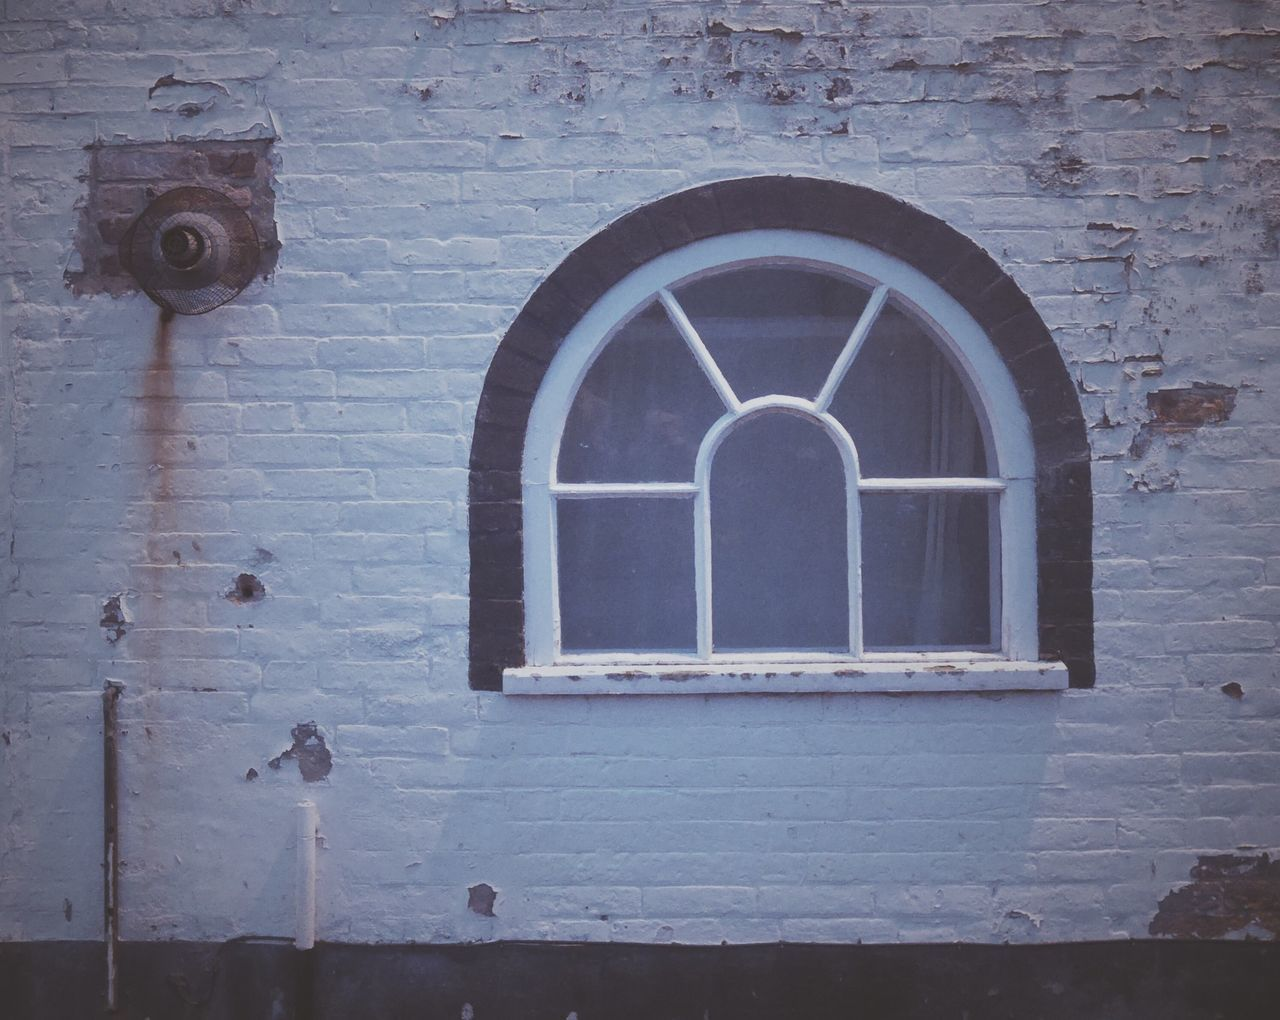 architecture, built structure, arch, window, day, building exterior, no people, place of worship, spirituality, religion, history, low angle view, outdoors, whitewashed, close-up